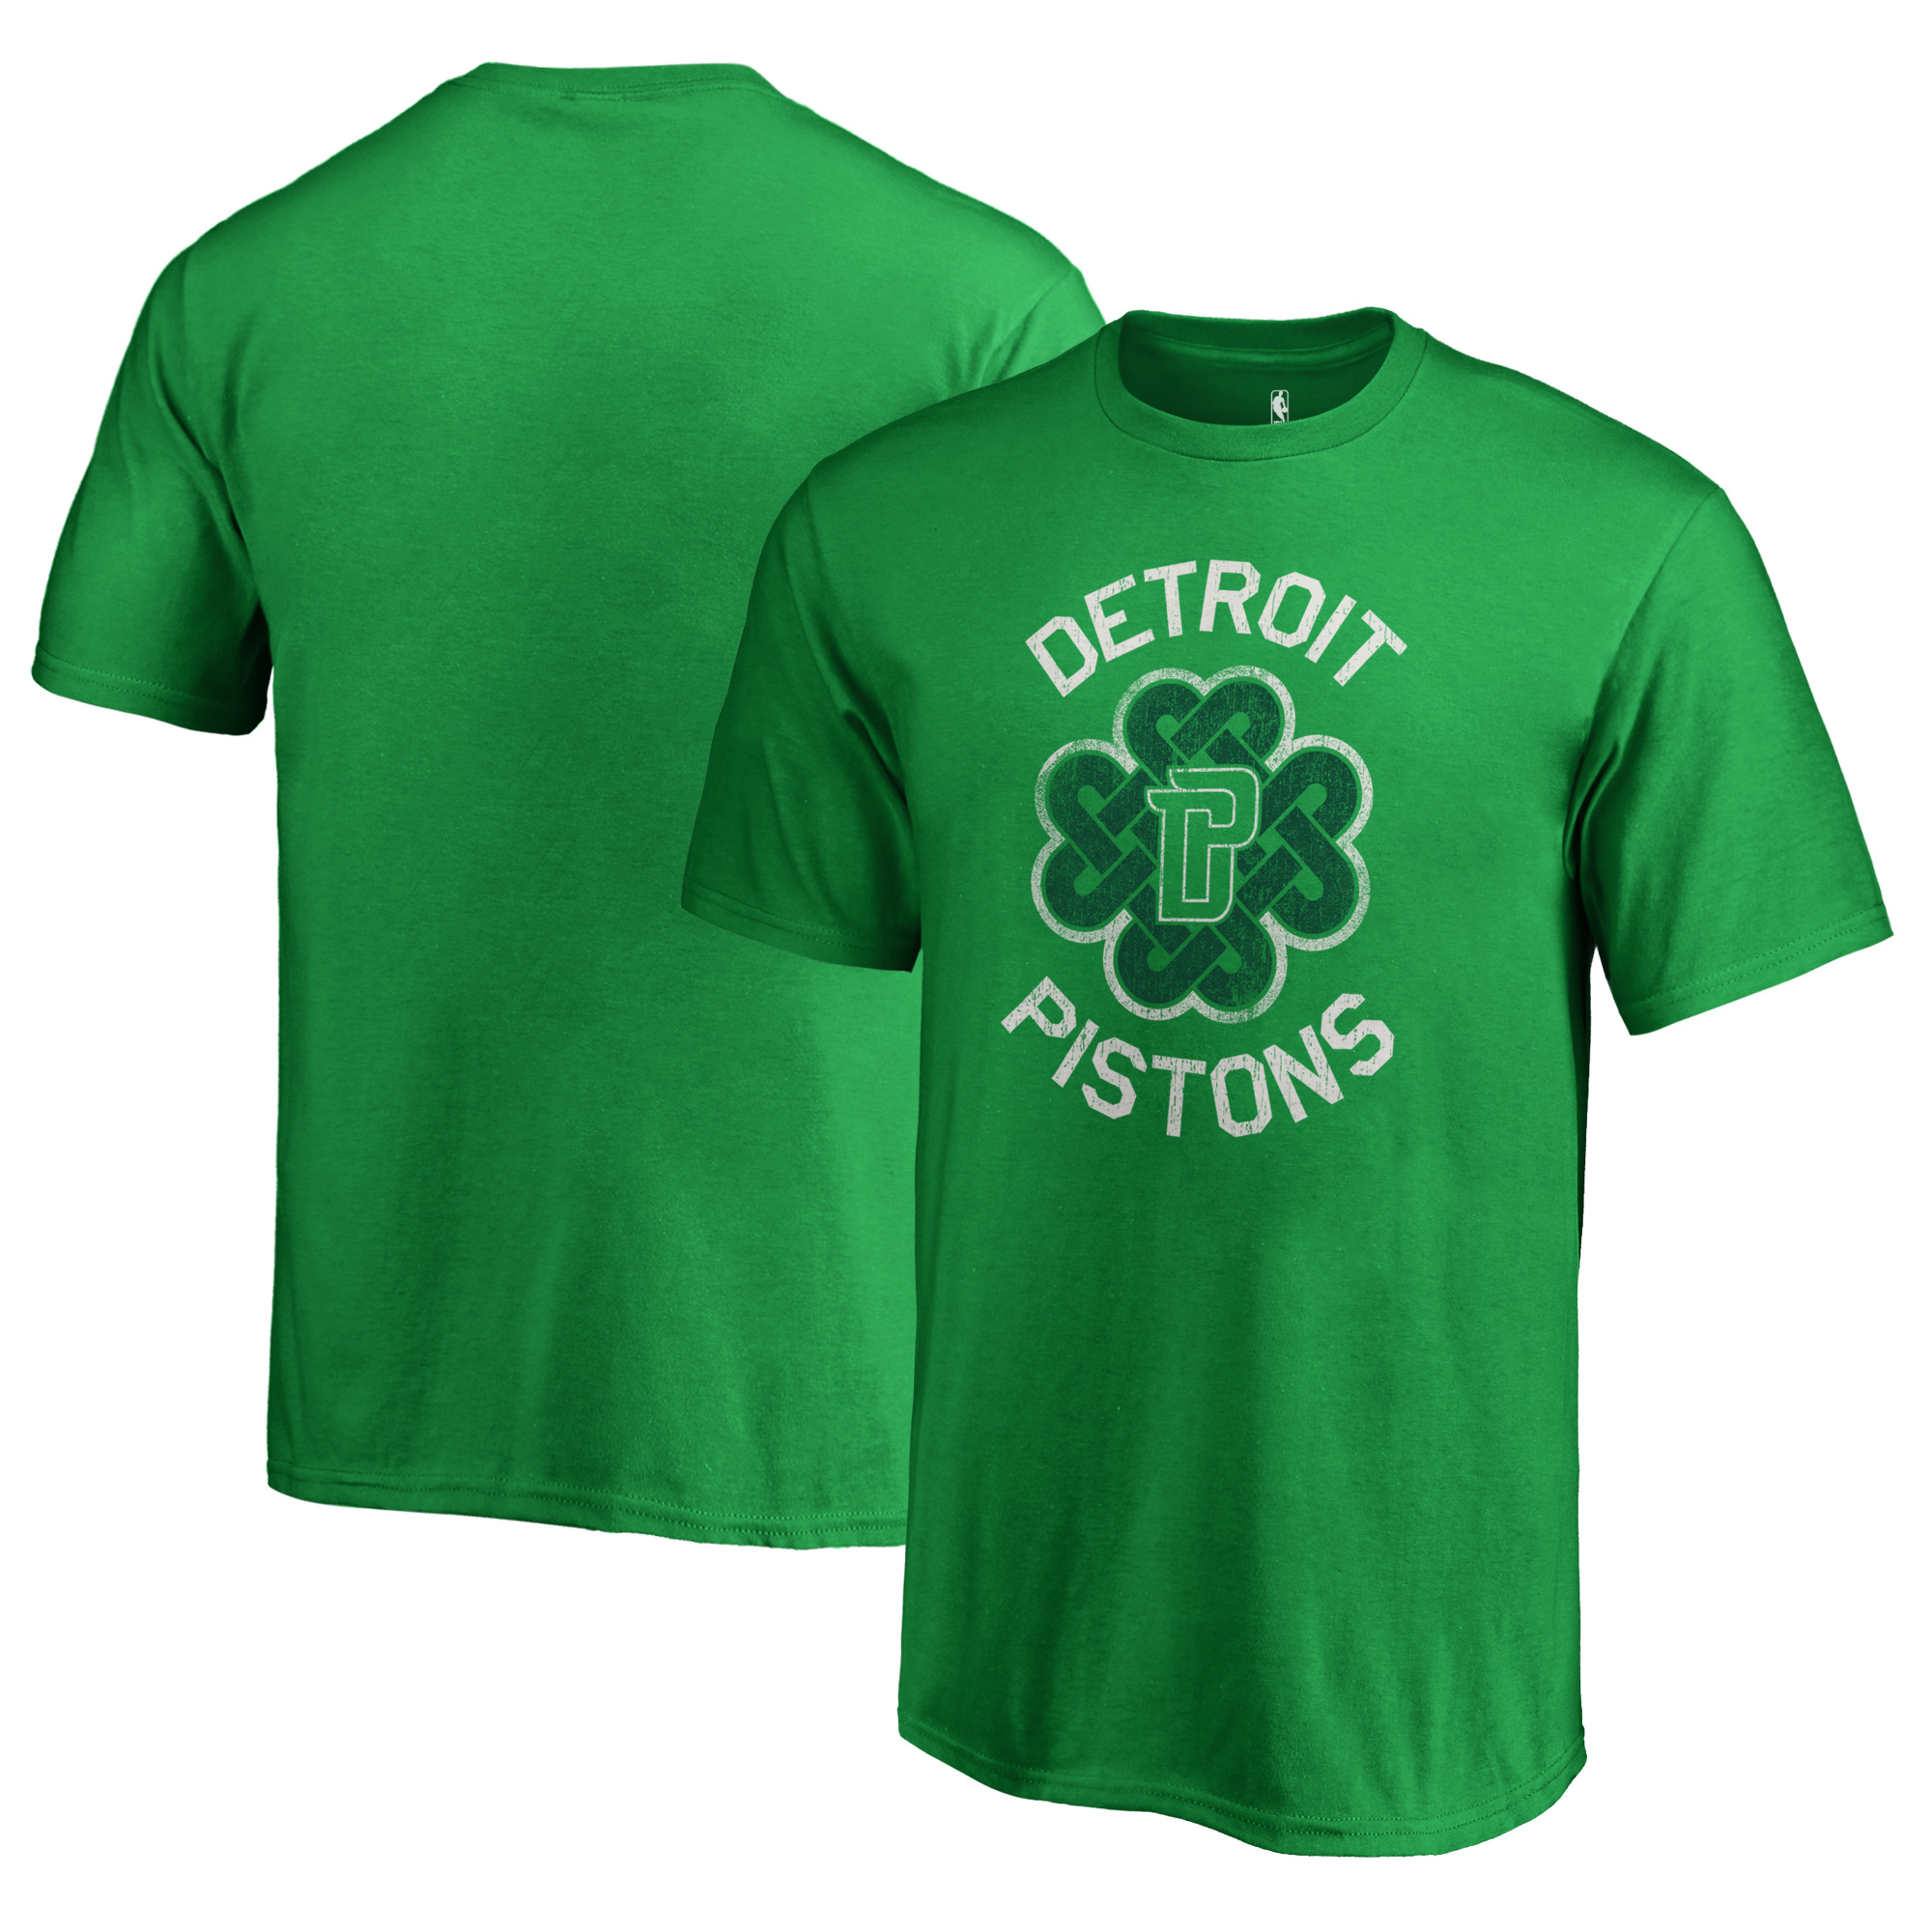 Detroit Pistons Fanatics Branded Youth St. Patrick's Day Luck Tradition T-Shirt - Kelly Green